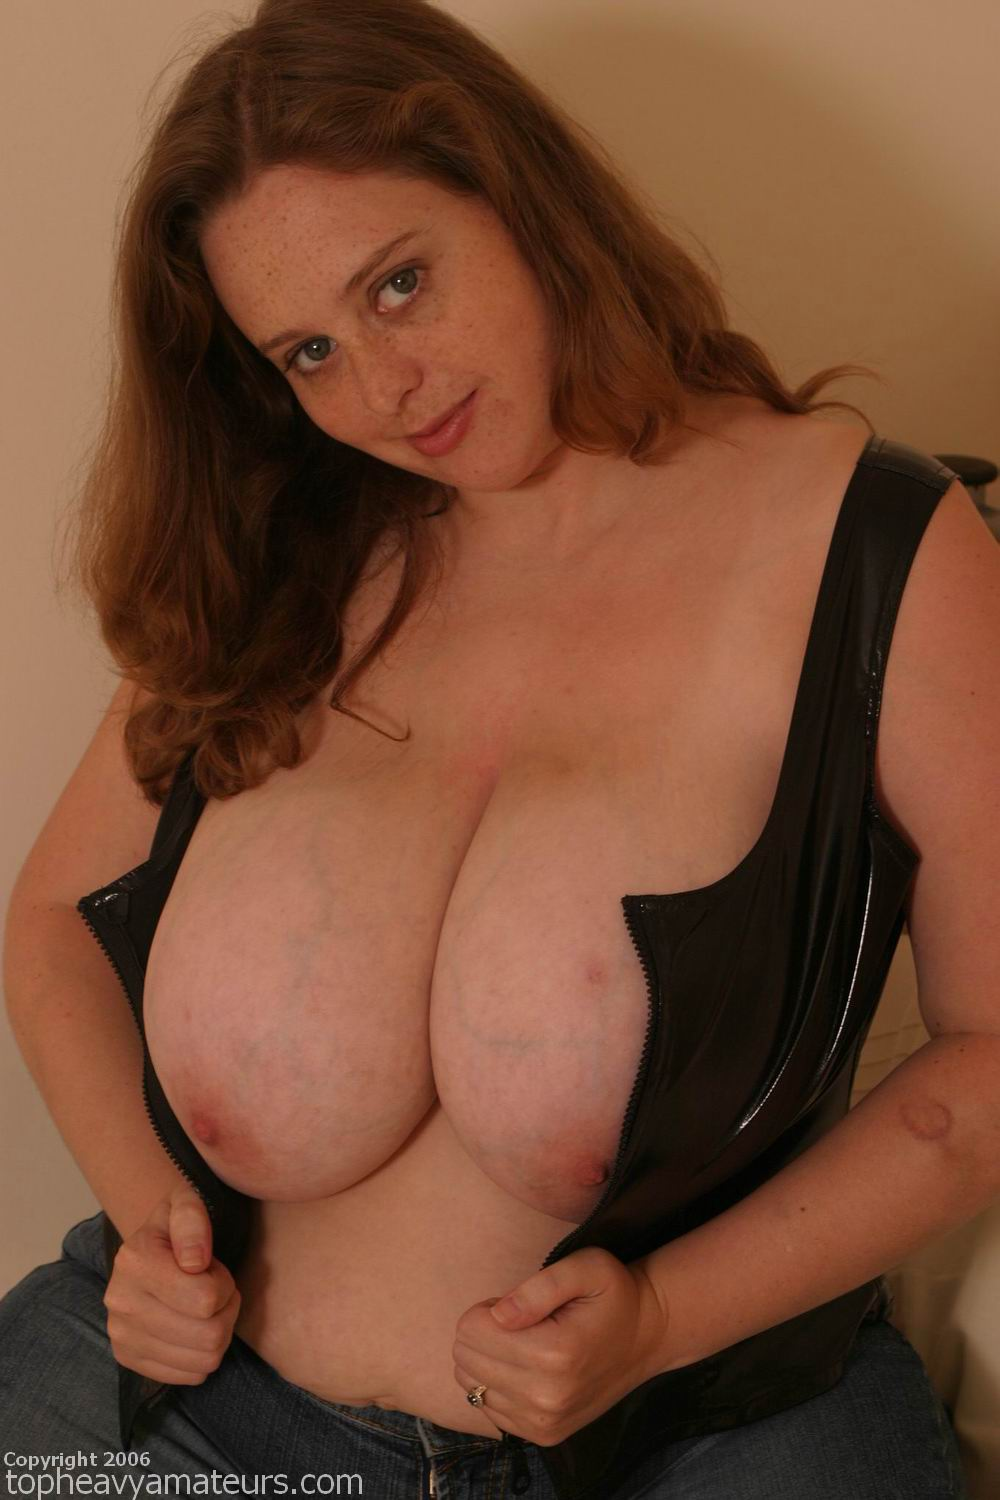 from Vaughn top heavy amateur julie big boobs